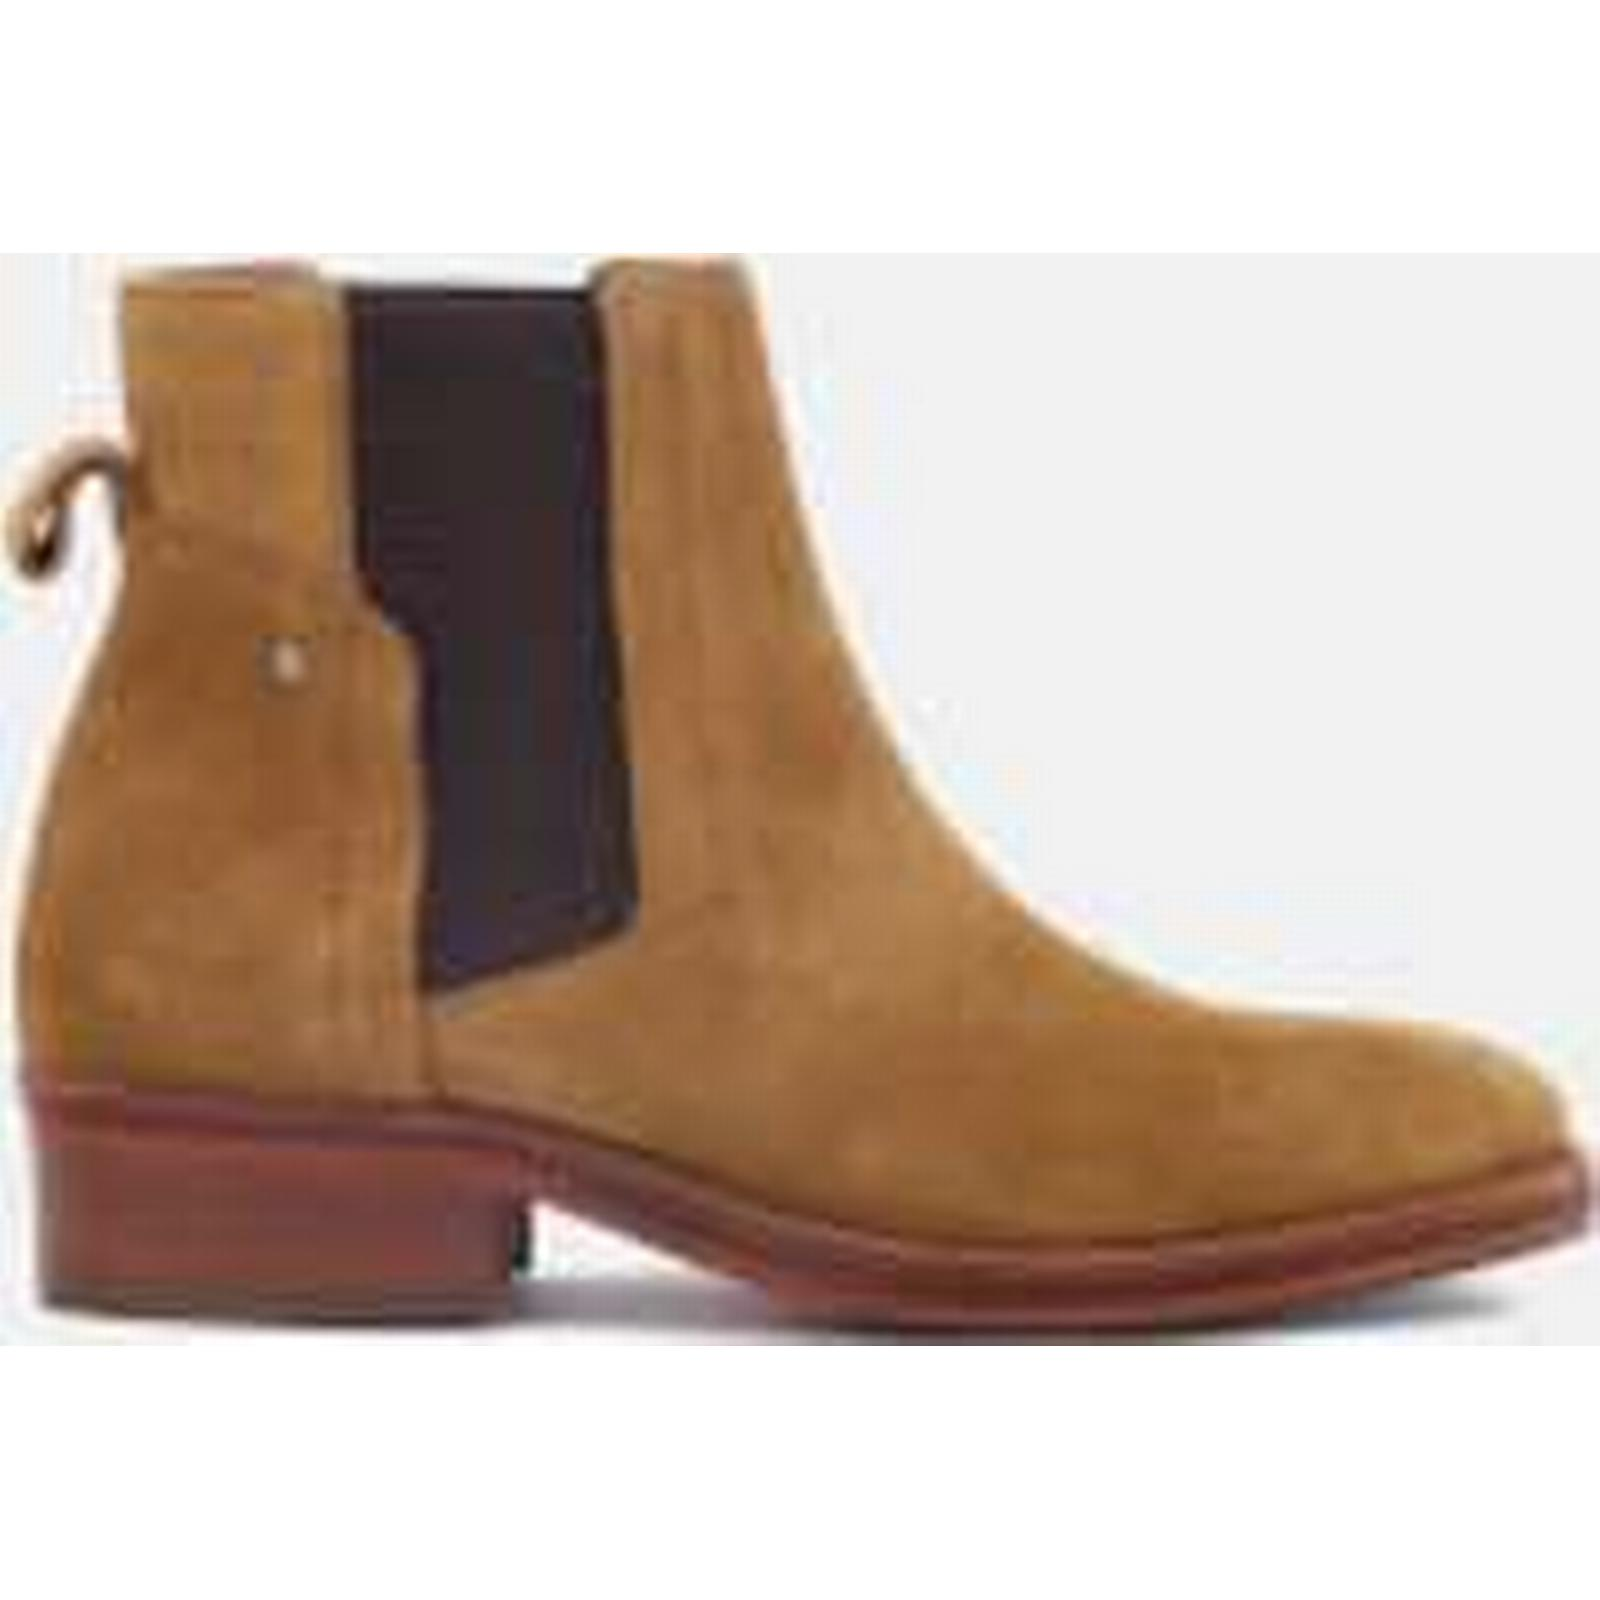 Hudson London Boots Women's Rodney Suede Chelsea Boots London - Tan - UK 4 - Tan 004ab5